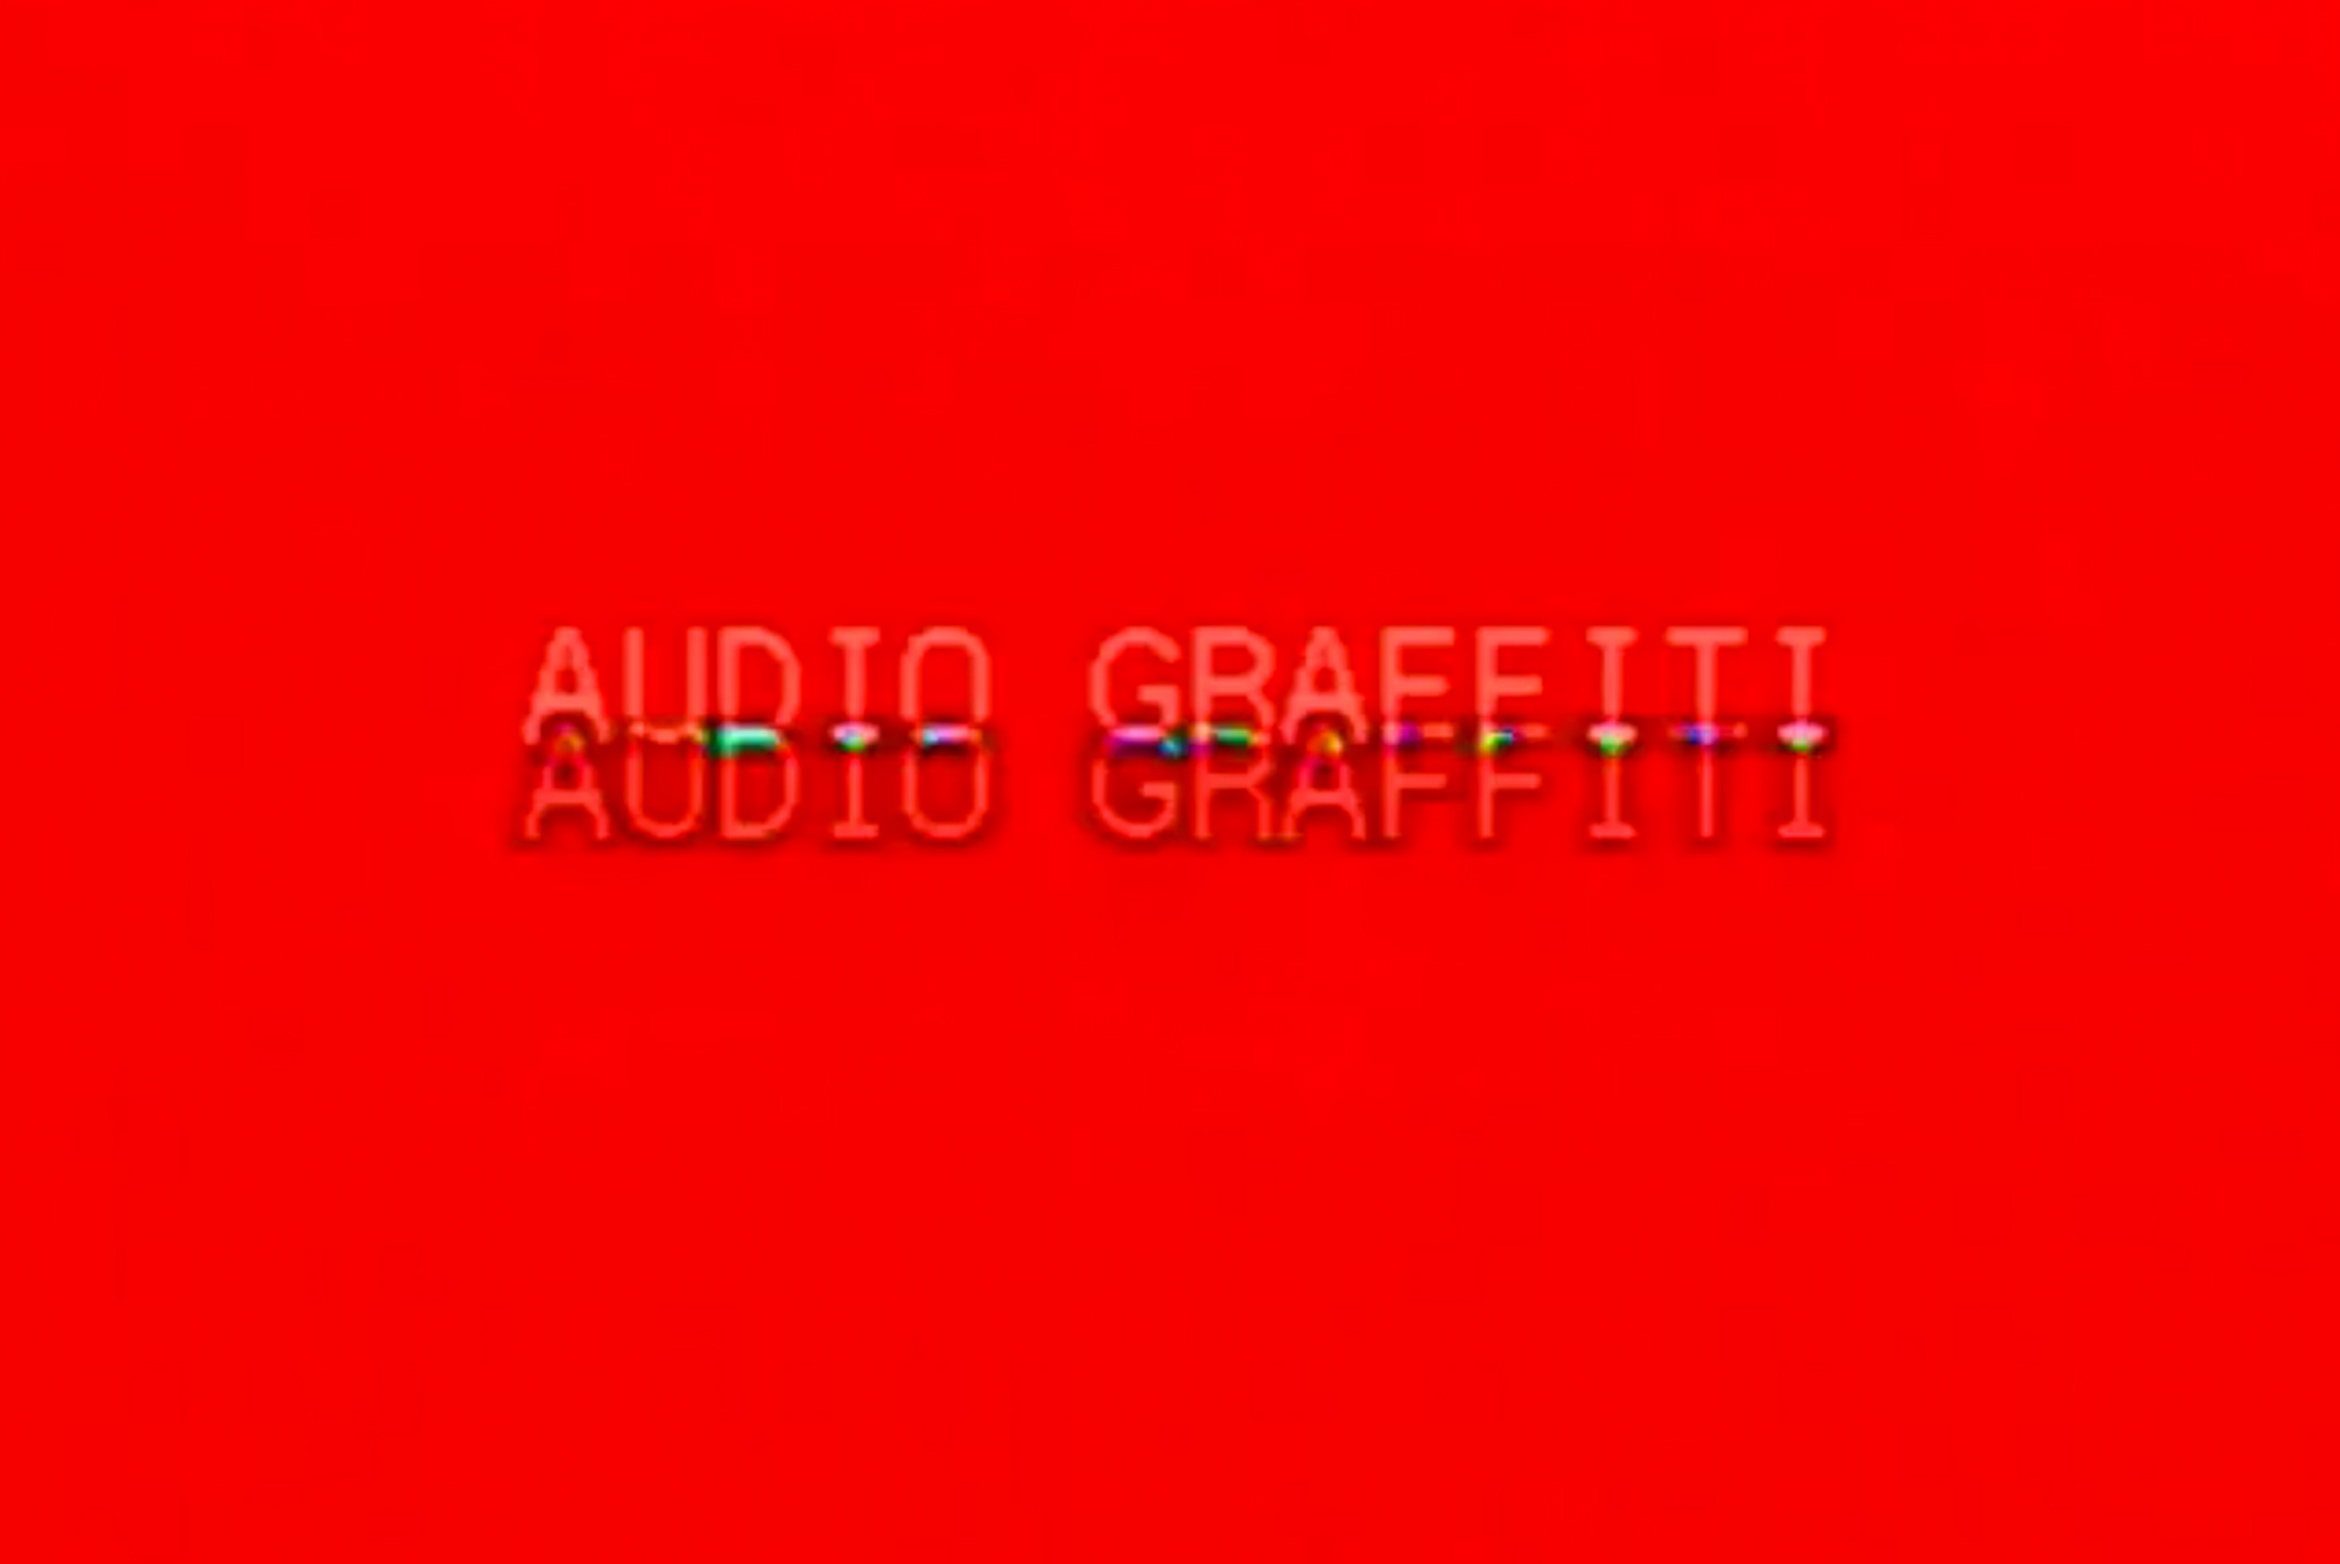 thierry-jaspart-audio-graffiti-vhs